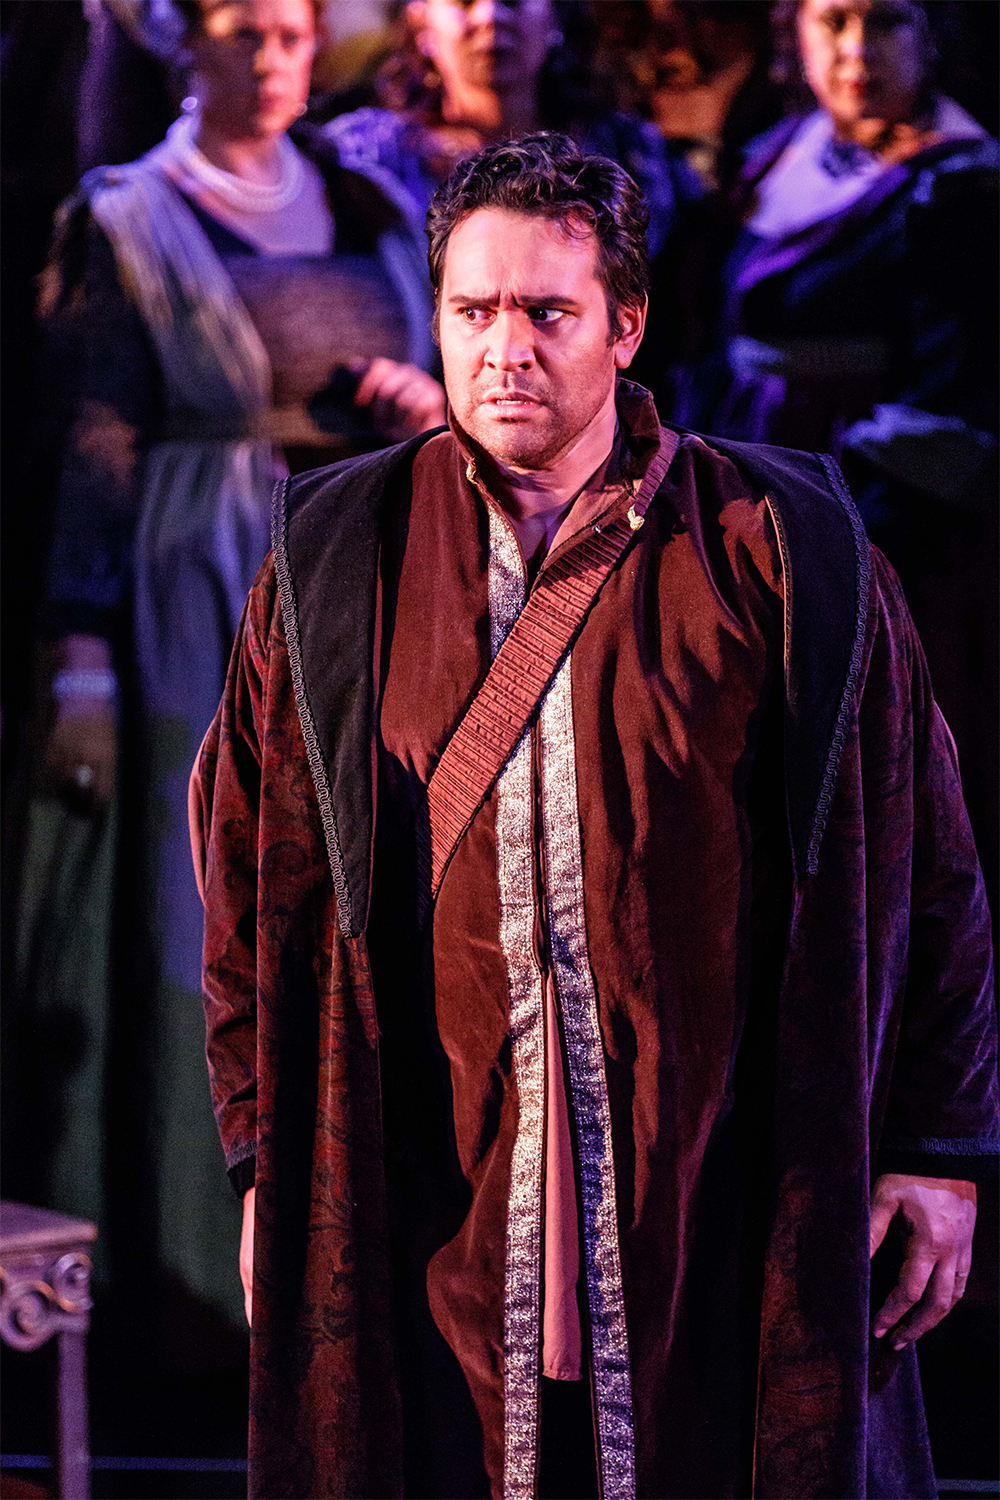 Stephen Smith as Otello (photo by Robin Halls)